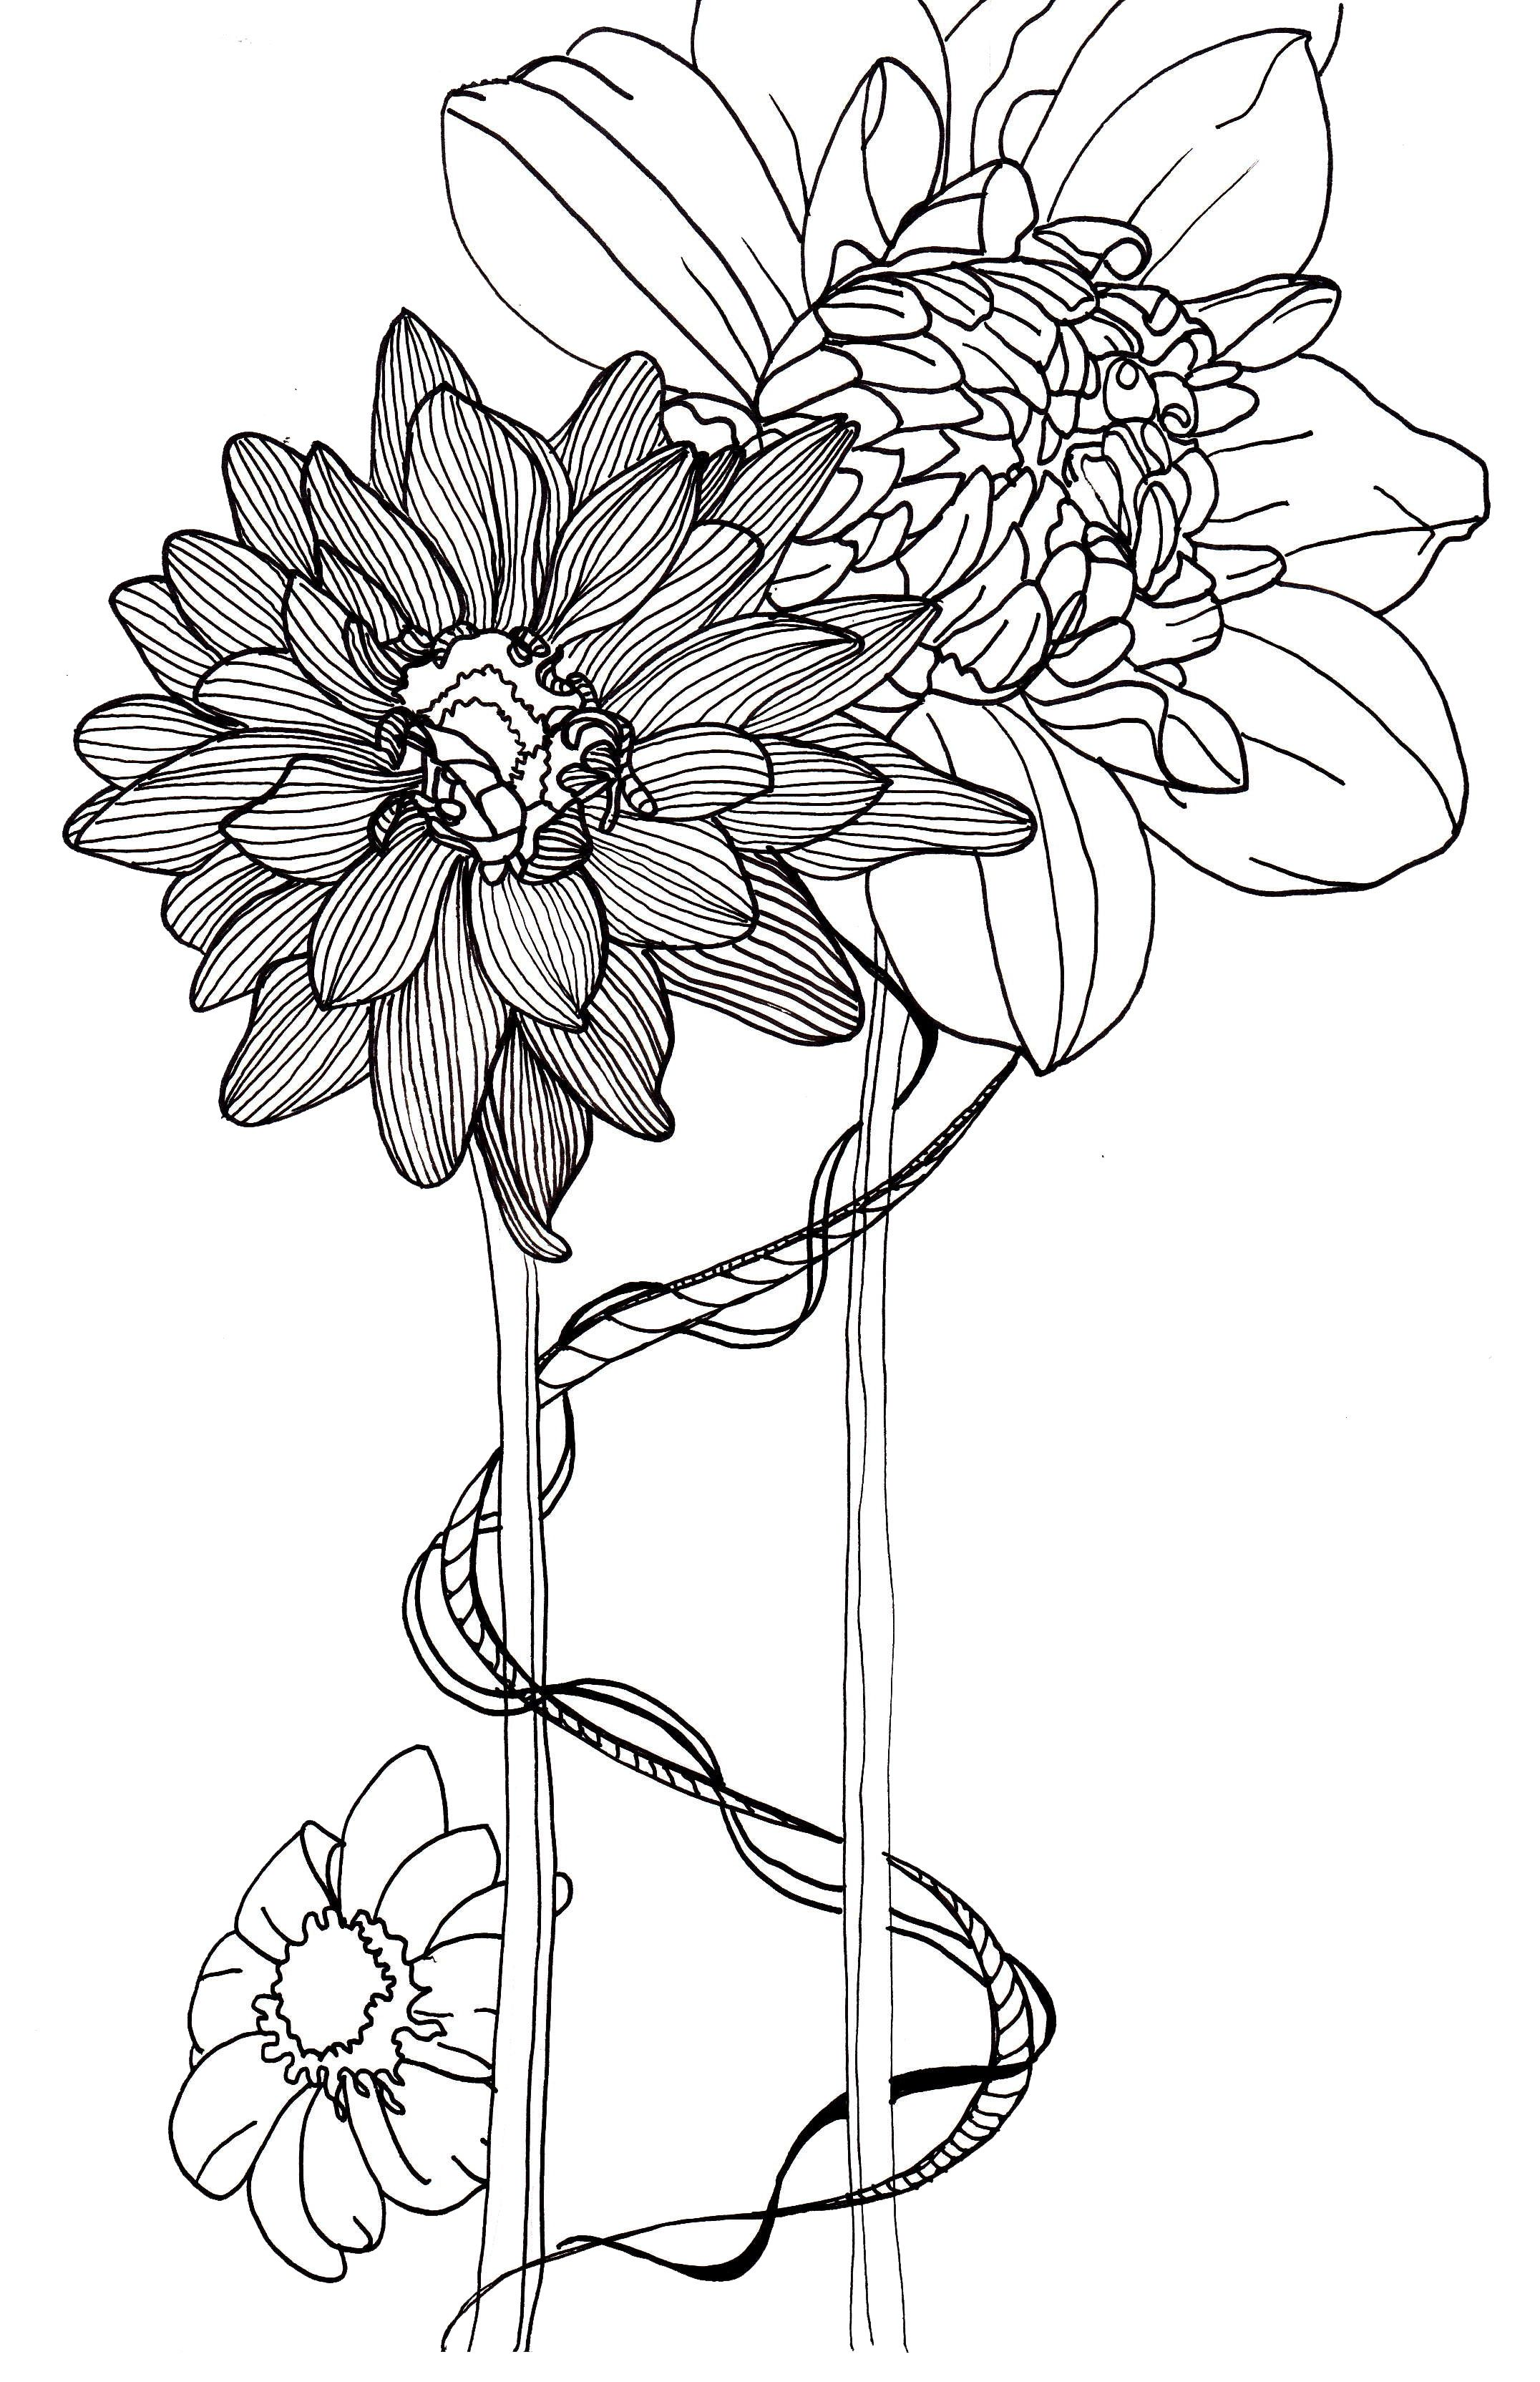 Line Drawing Flower Images : Black and white line drawings of flowers pixshark